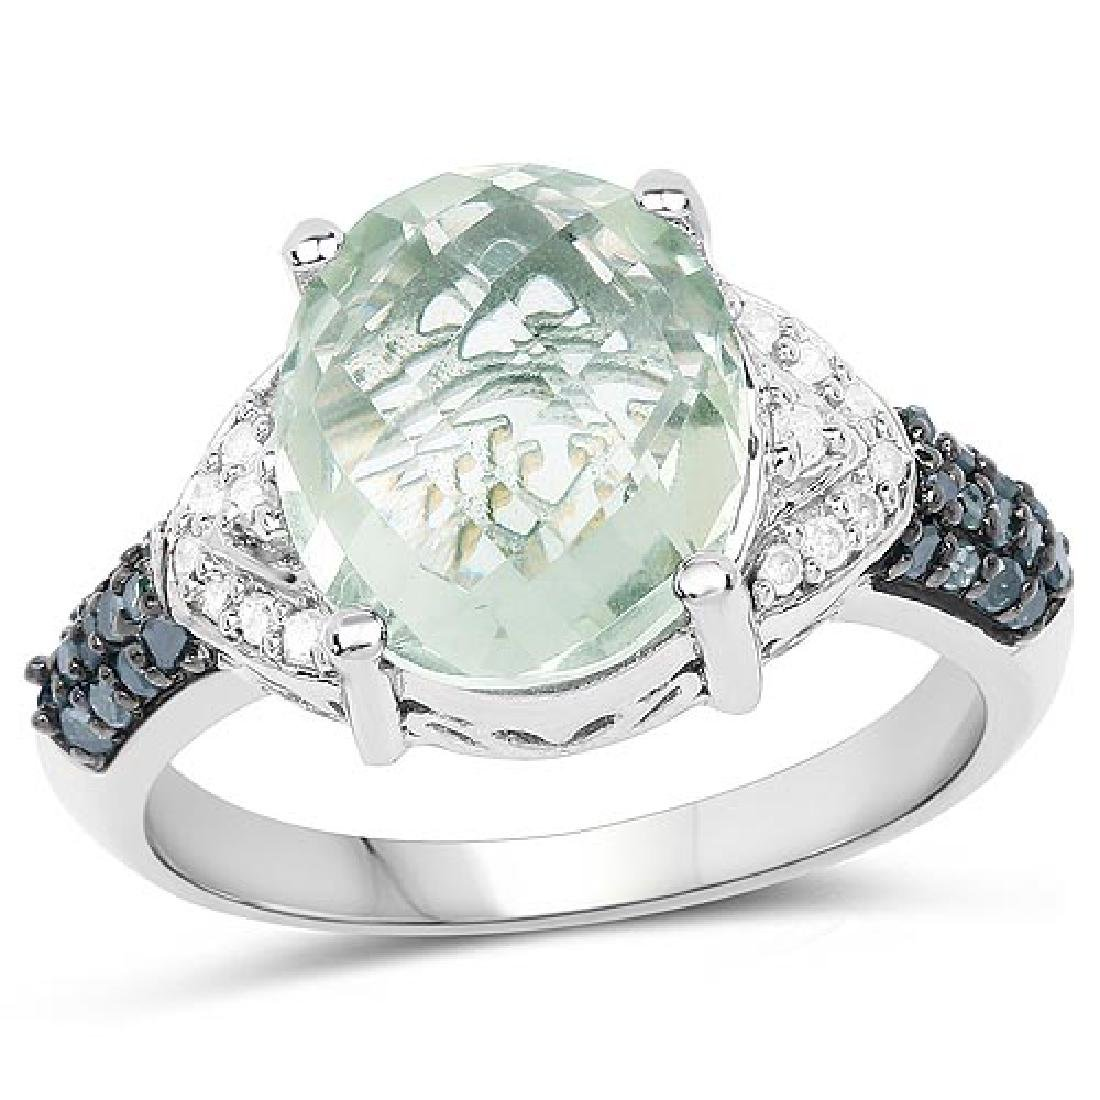 4.24 Carat Genuine Green Amethyst Green Diamond and Wh